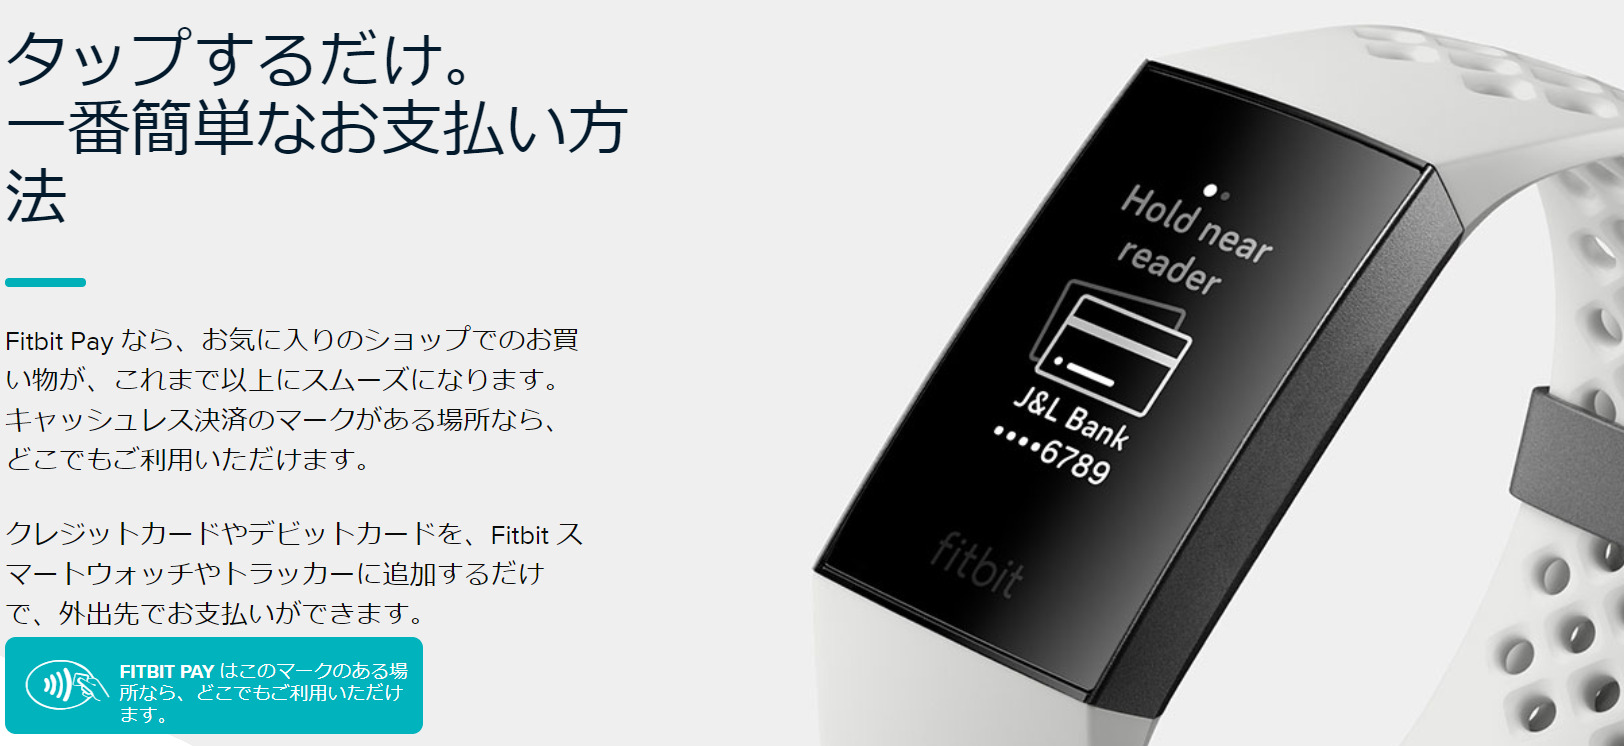 Fitbit_Suica_FitbitPay